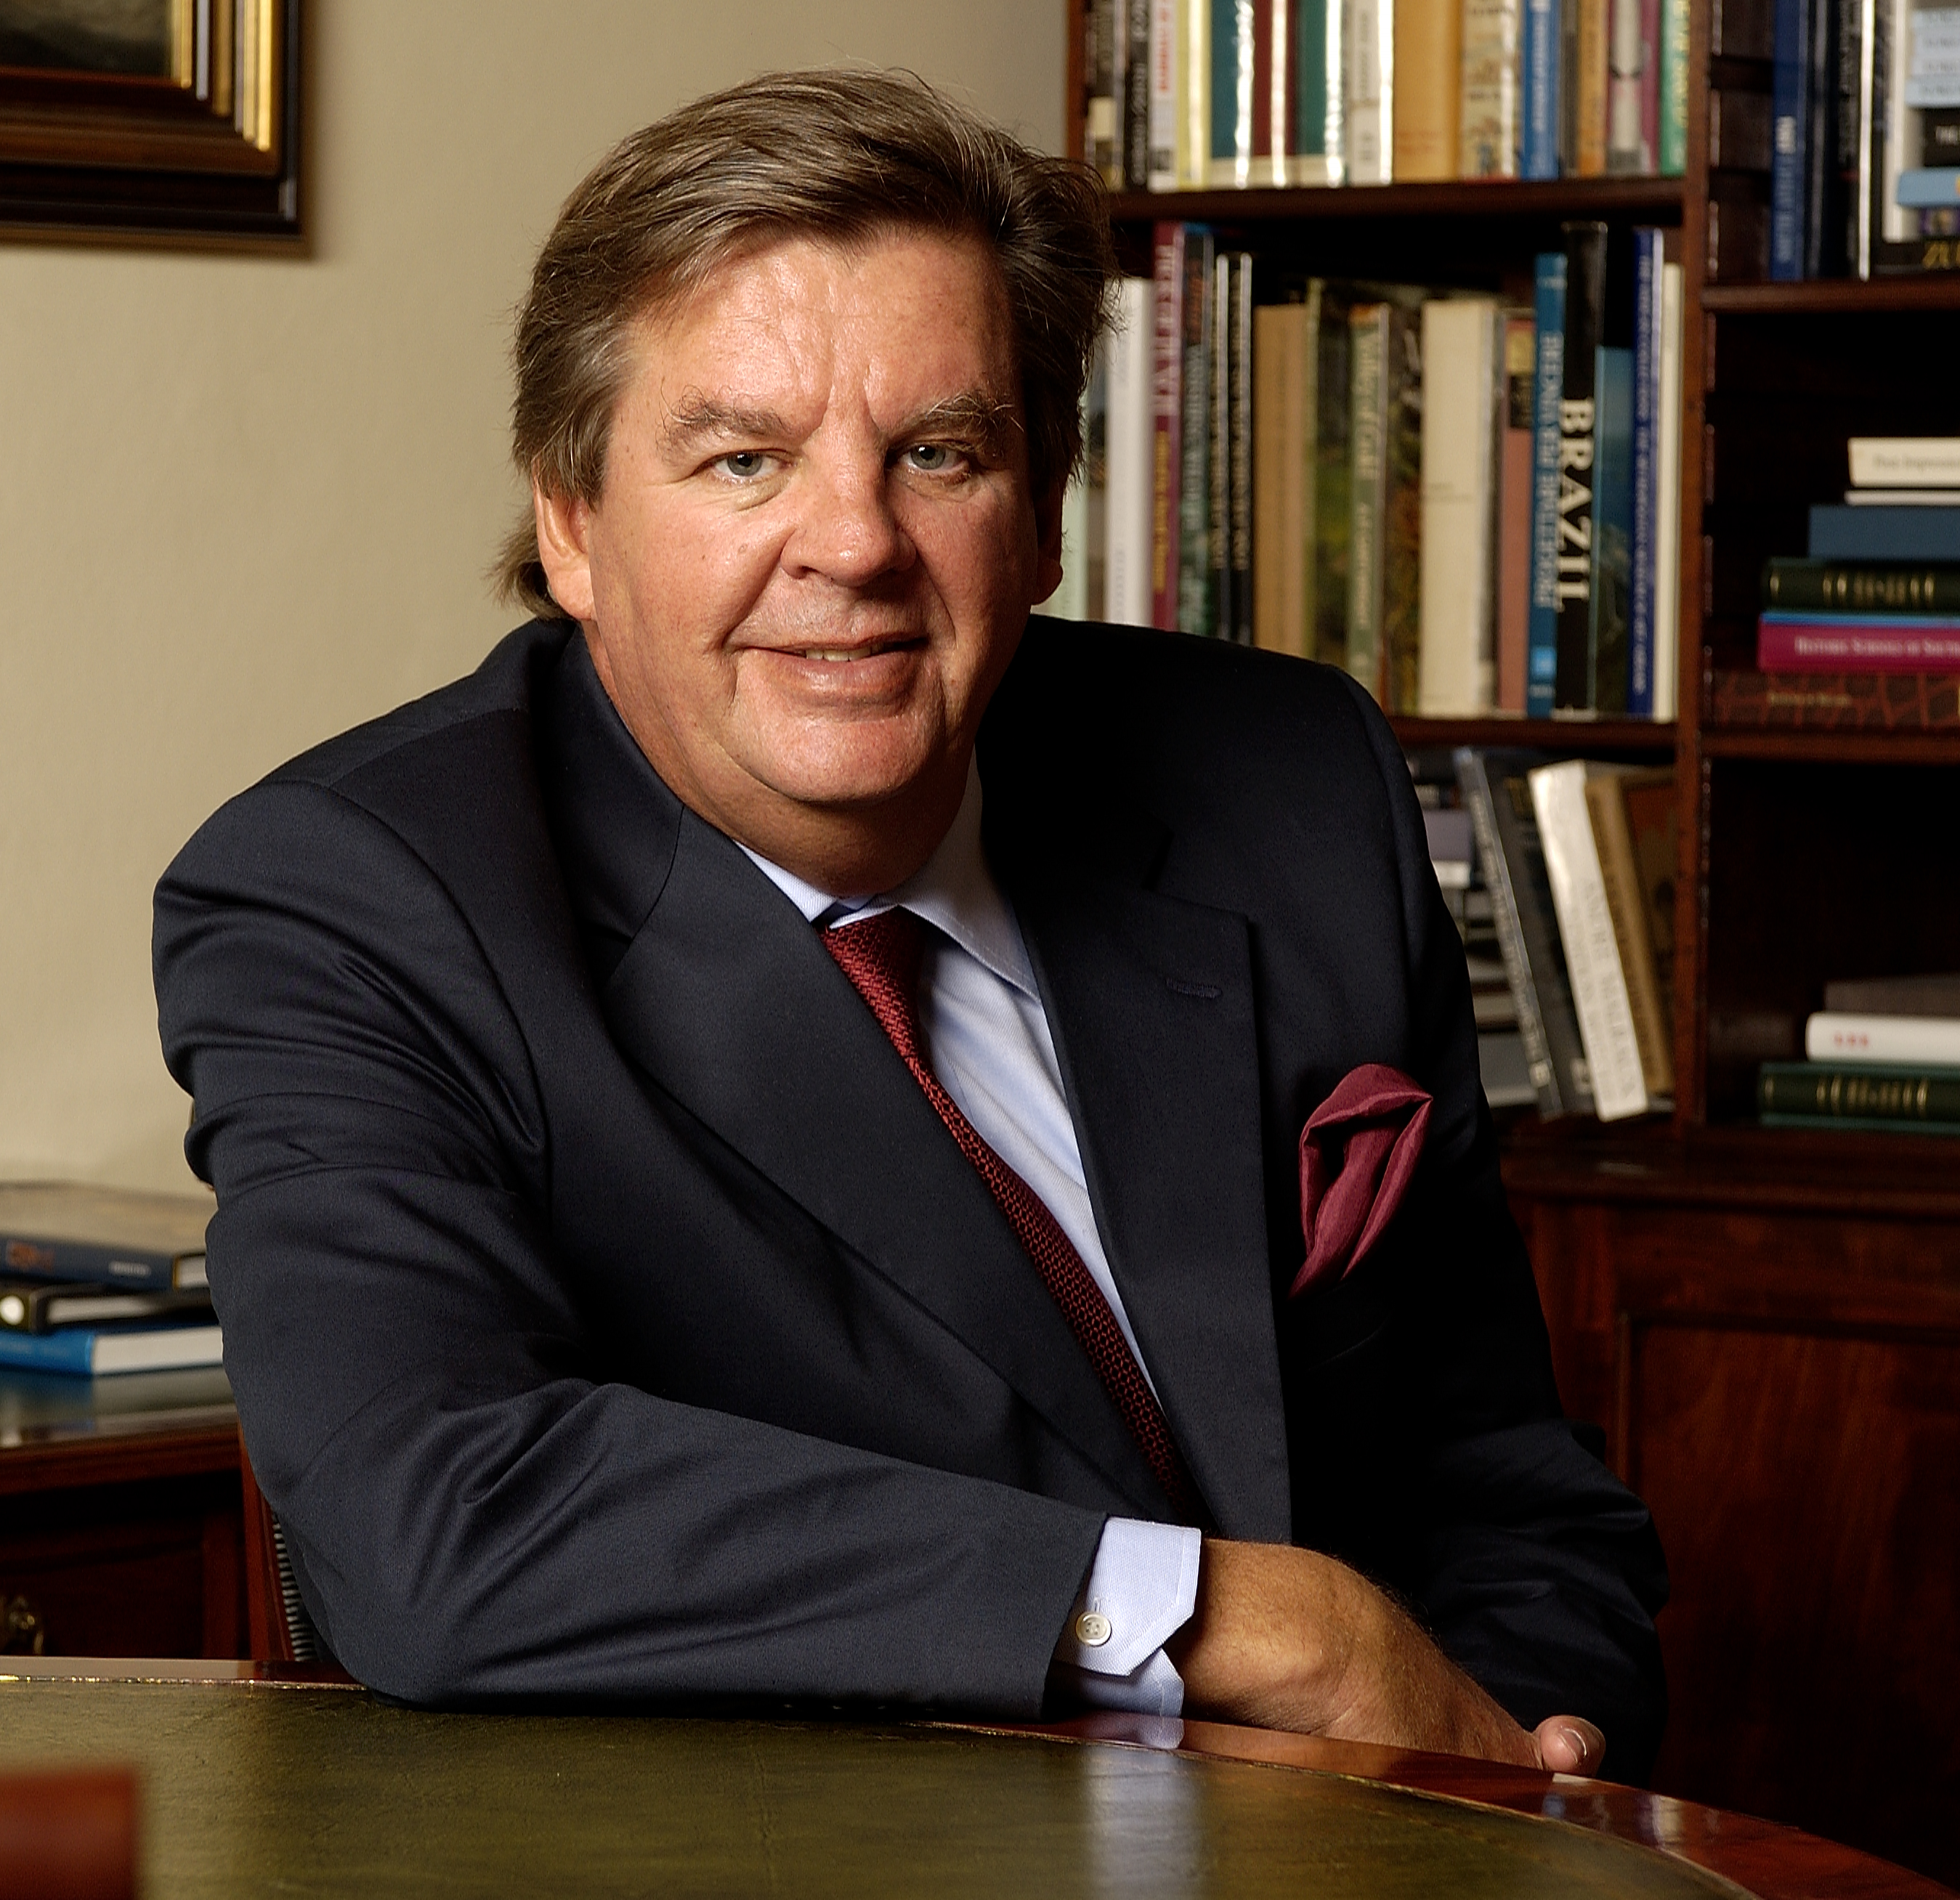 The 67-year old son of father Anton Rupert and mother Huberte, 175 cm tall Johann Rupert in 2017 photo